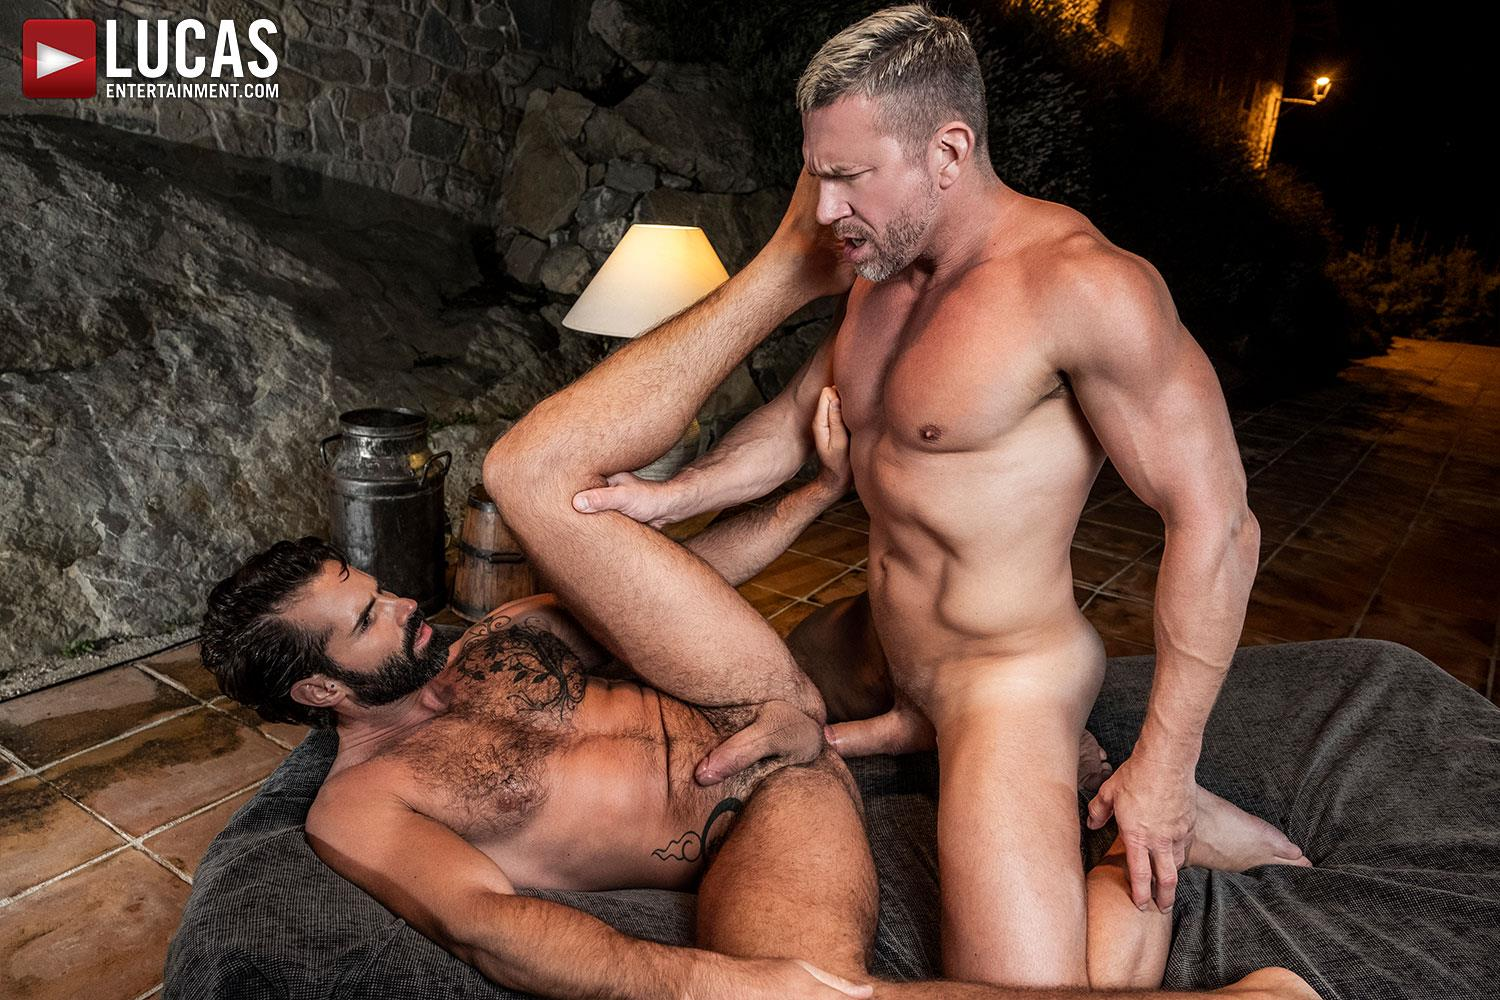 Lucas-Entertainment-Tomas-Brand-and-Dani-Robles-Big-Dick-Daddy-Barebacking-Younger-13 Muscle Daddy Tomas Brand Breeds Dani Robles With His Big Uncut Cock